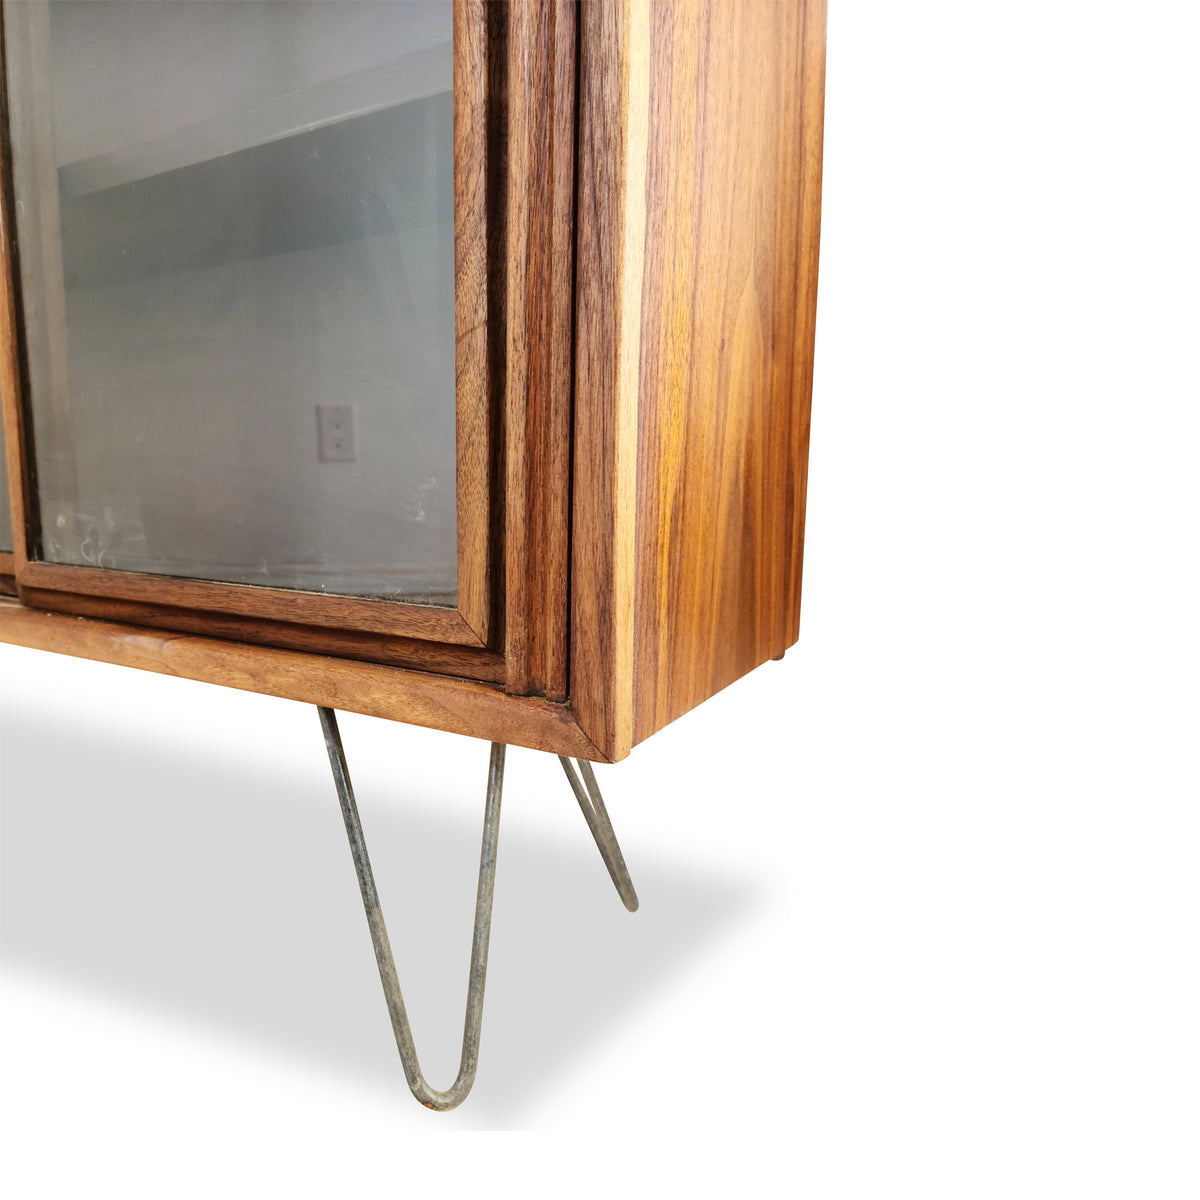 Walnut bookcase by Honderich